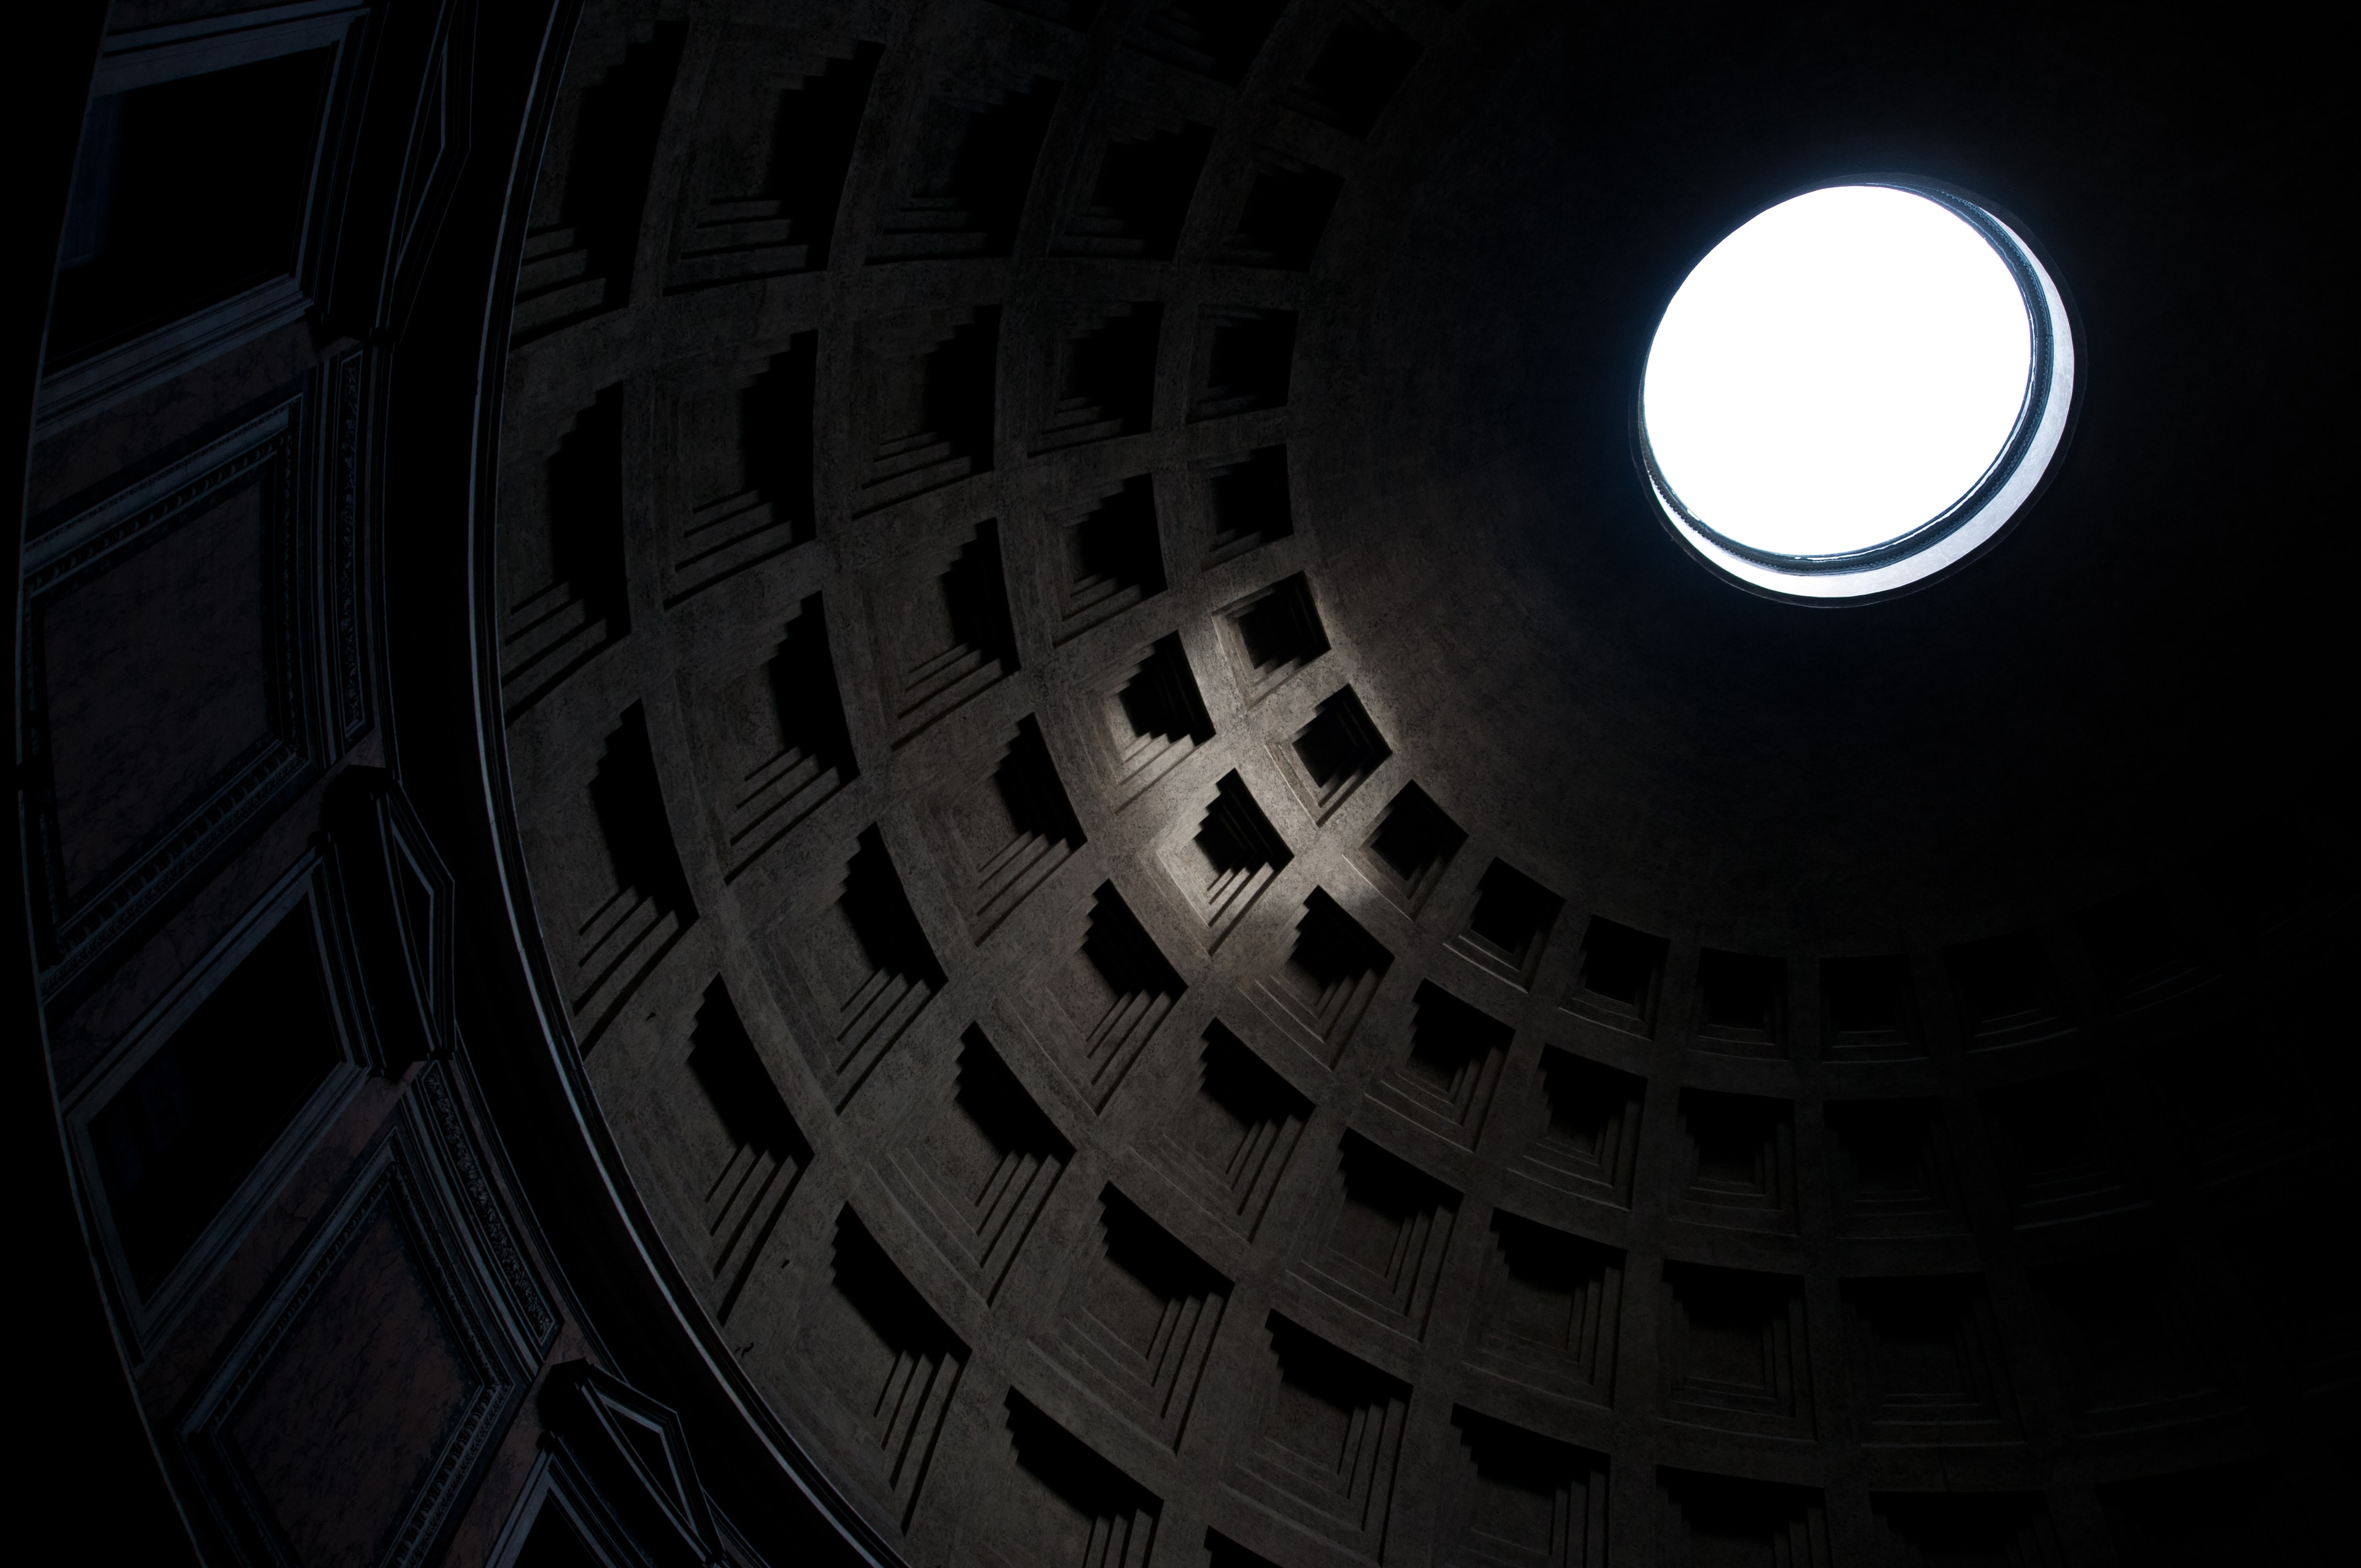 low-angle view of dome interior